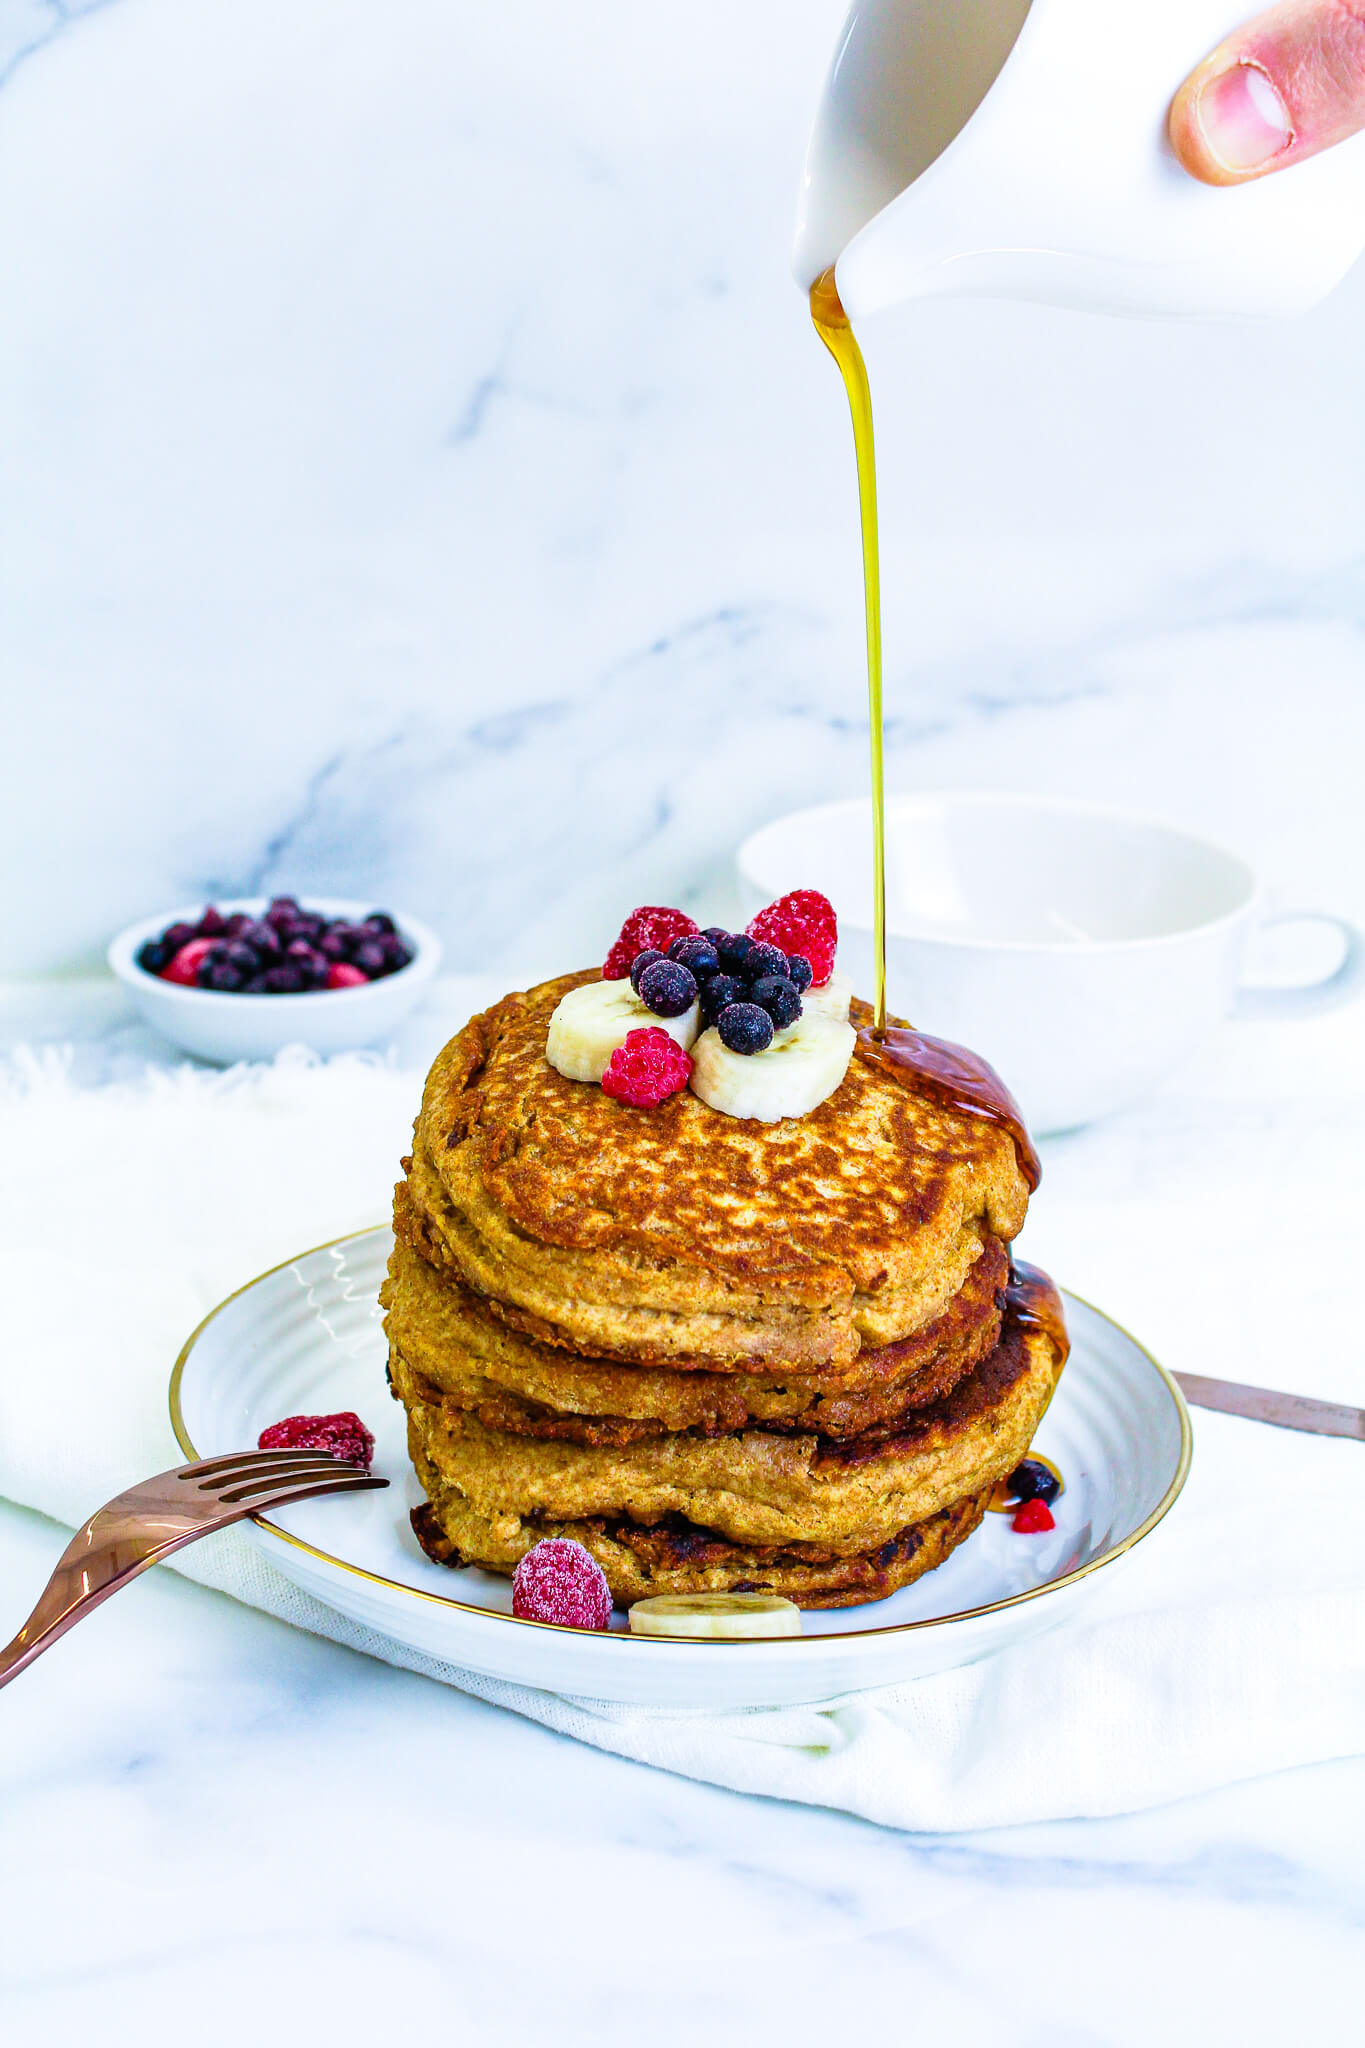 Sustainable and Plant-based Lifestyle influencer shares her delicious NOURISHING PANCAKES recipe!